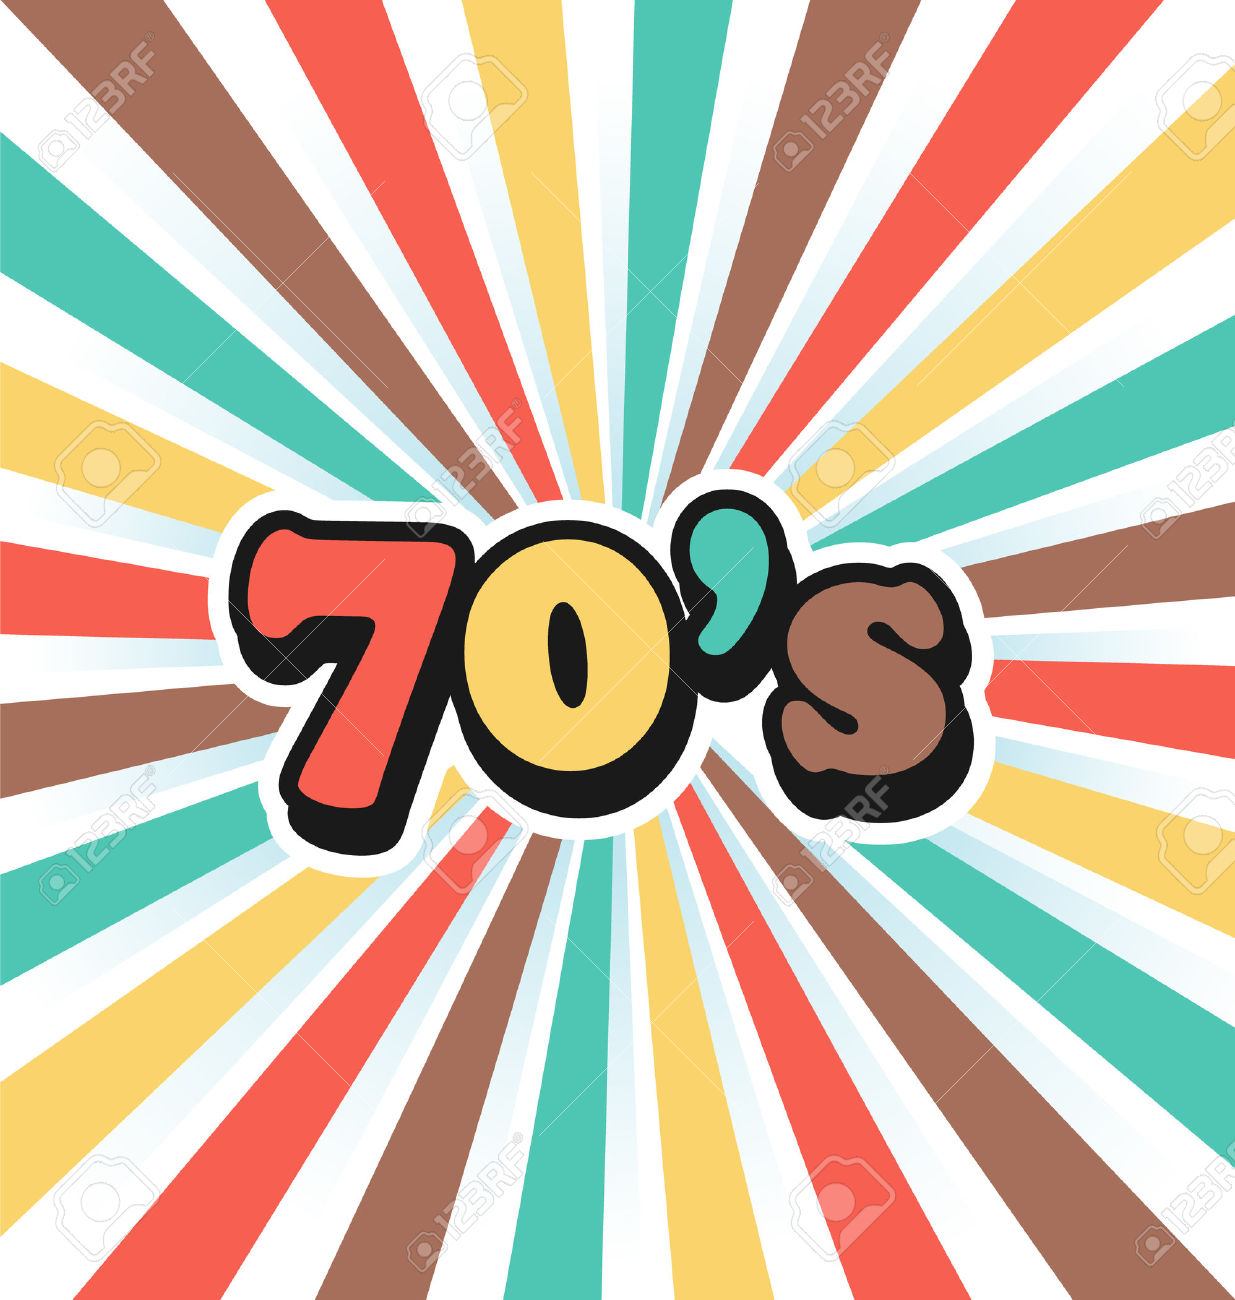 70s Background Pictures Images amp Photos  Photobucket